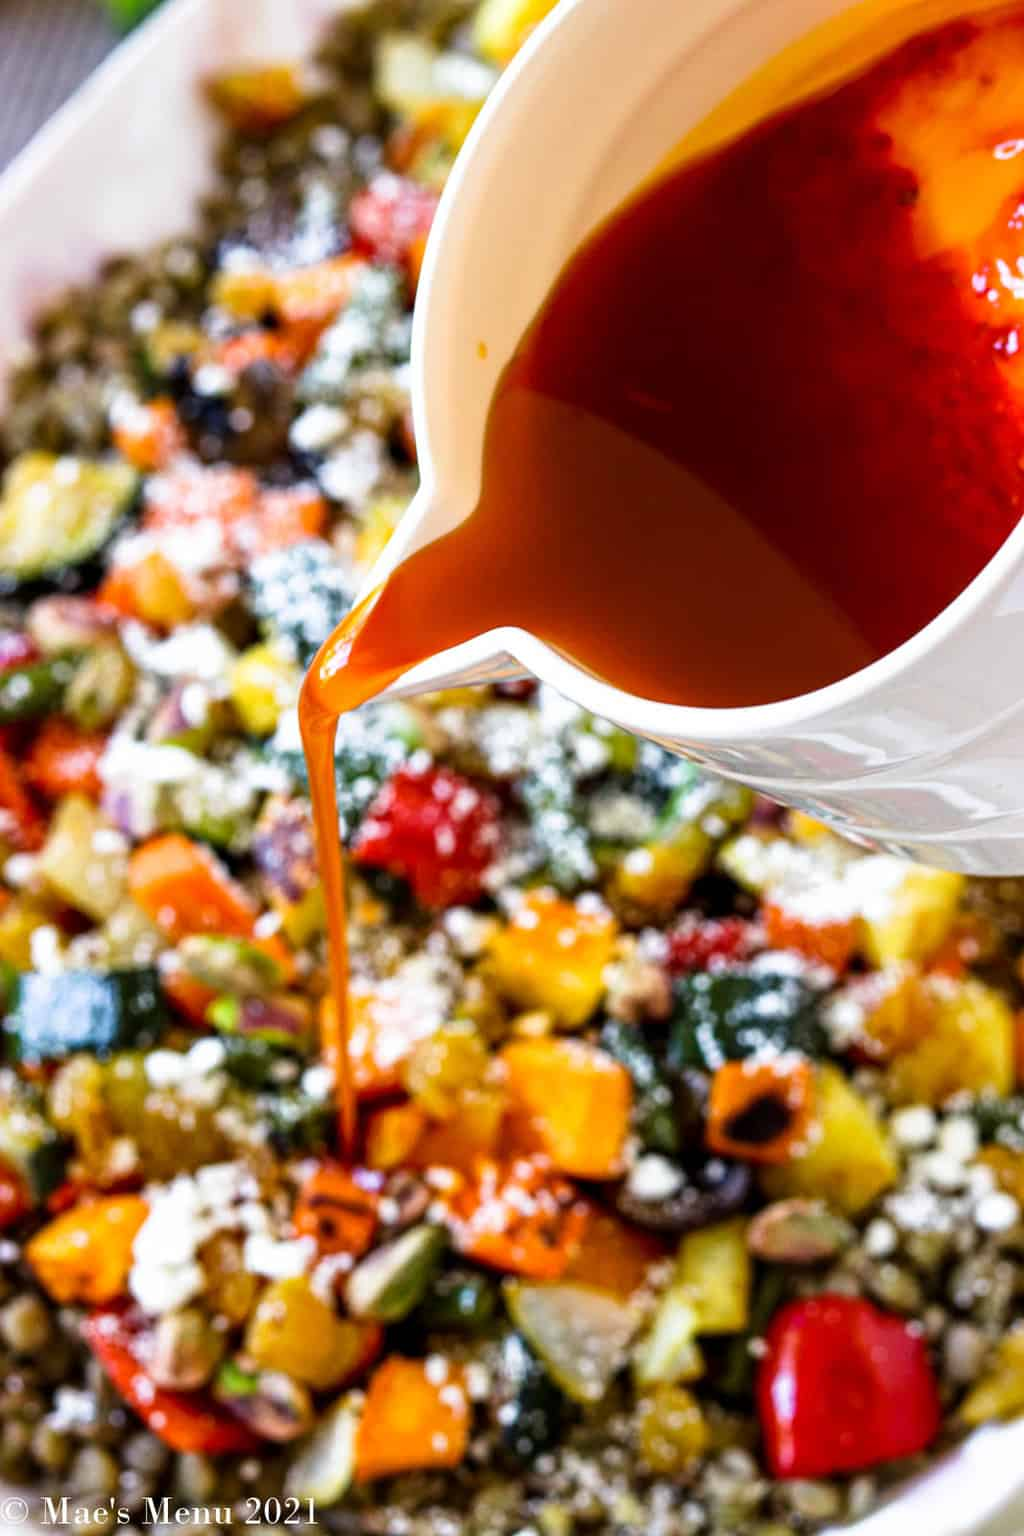 Drizzling harissa salad dressing over the Moroccan roasted vegetable salad dressing